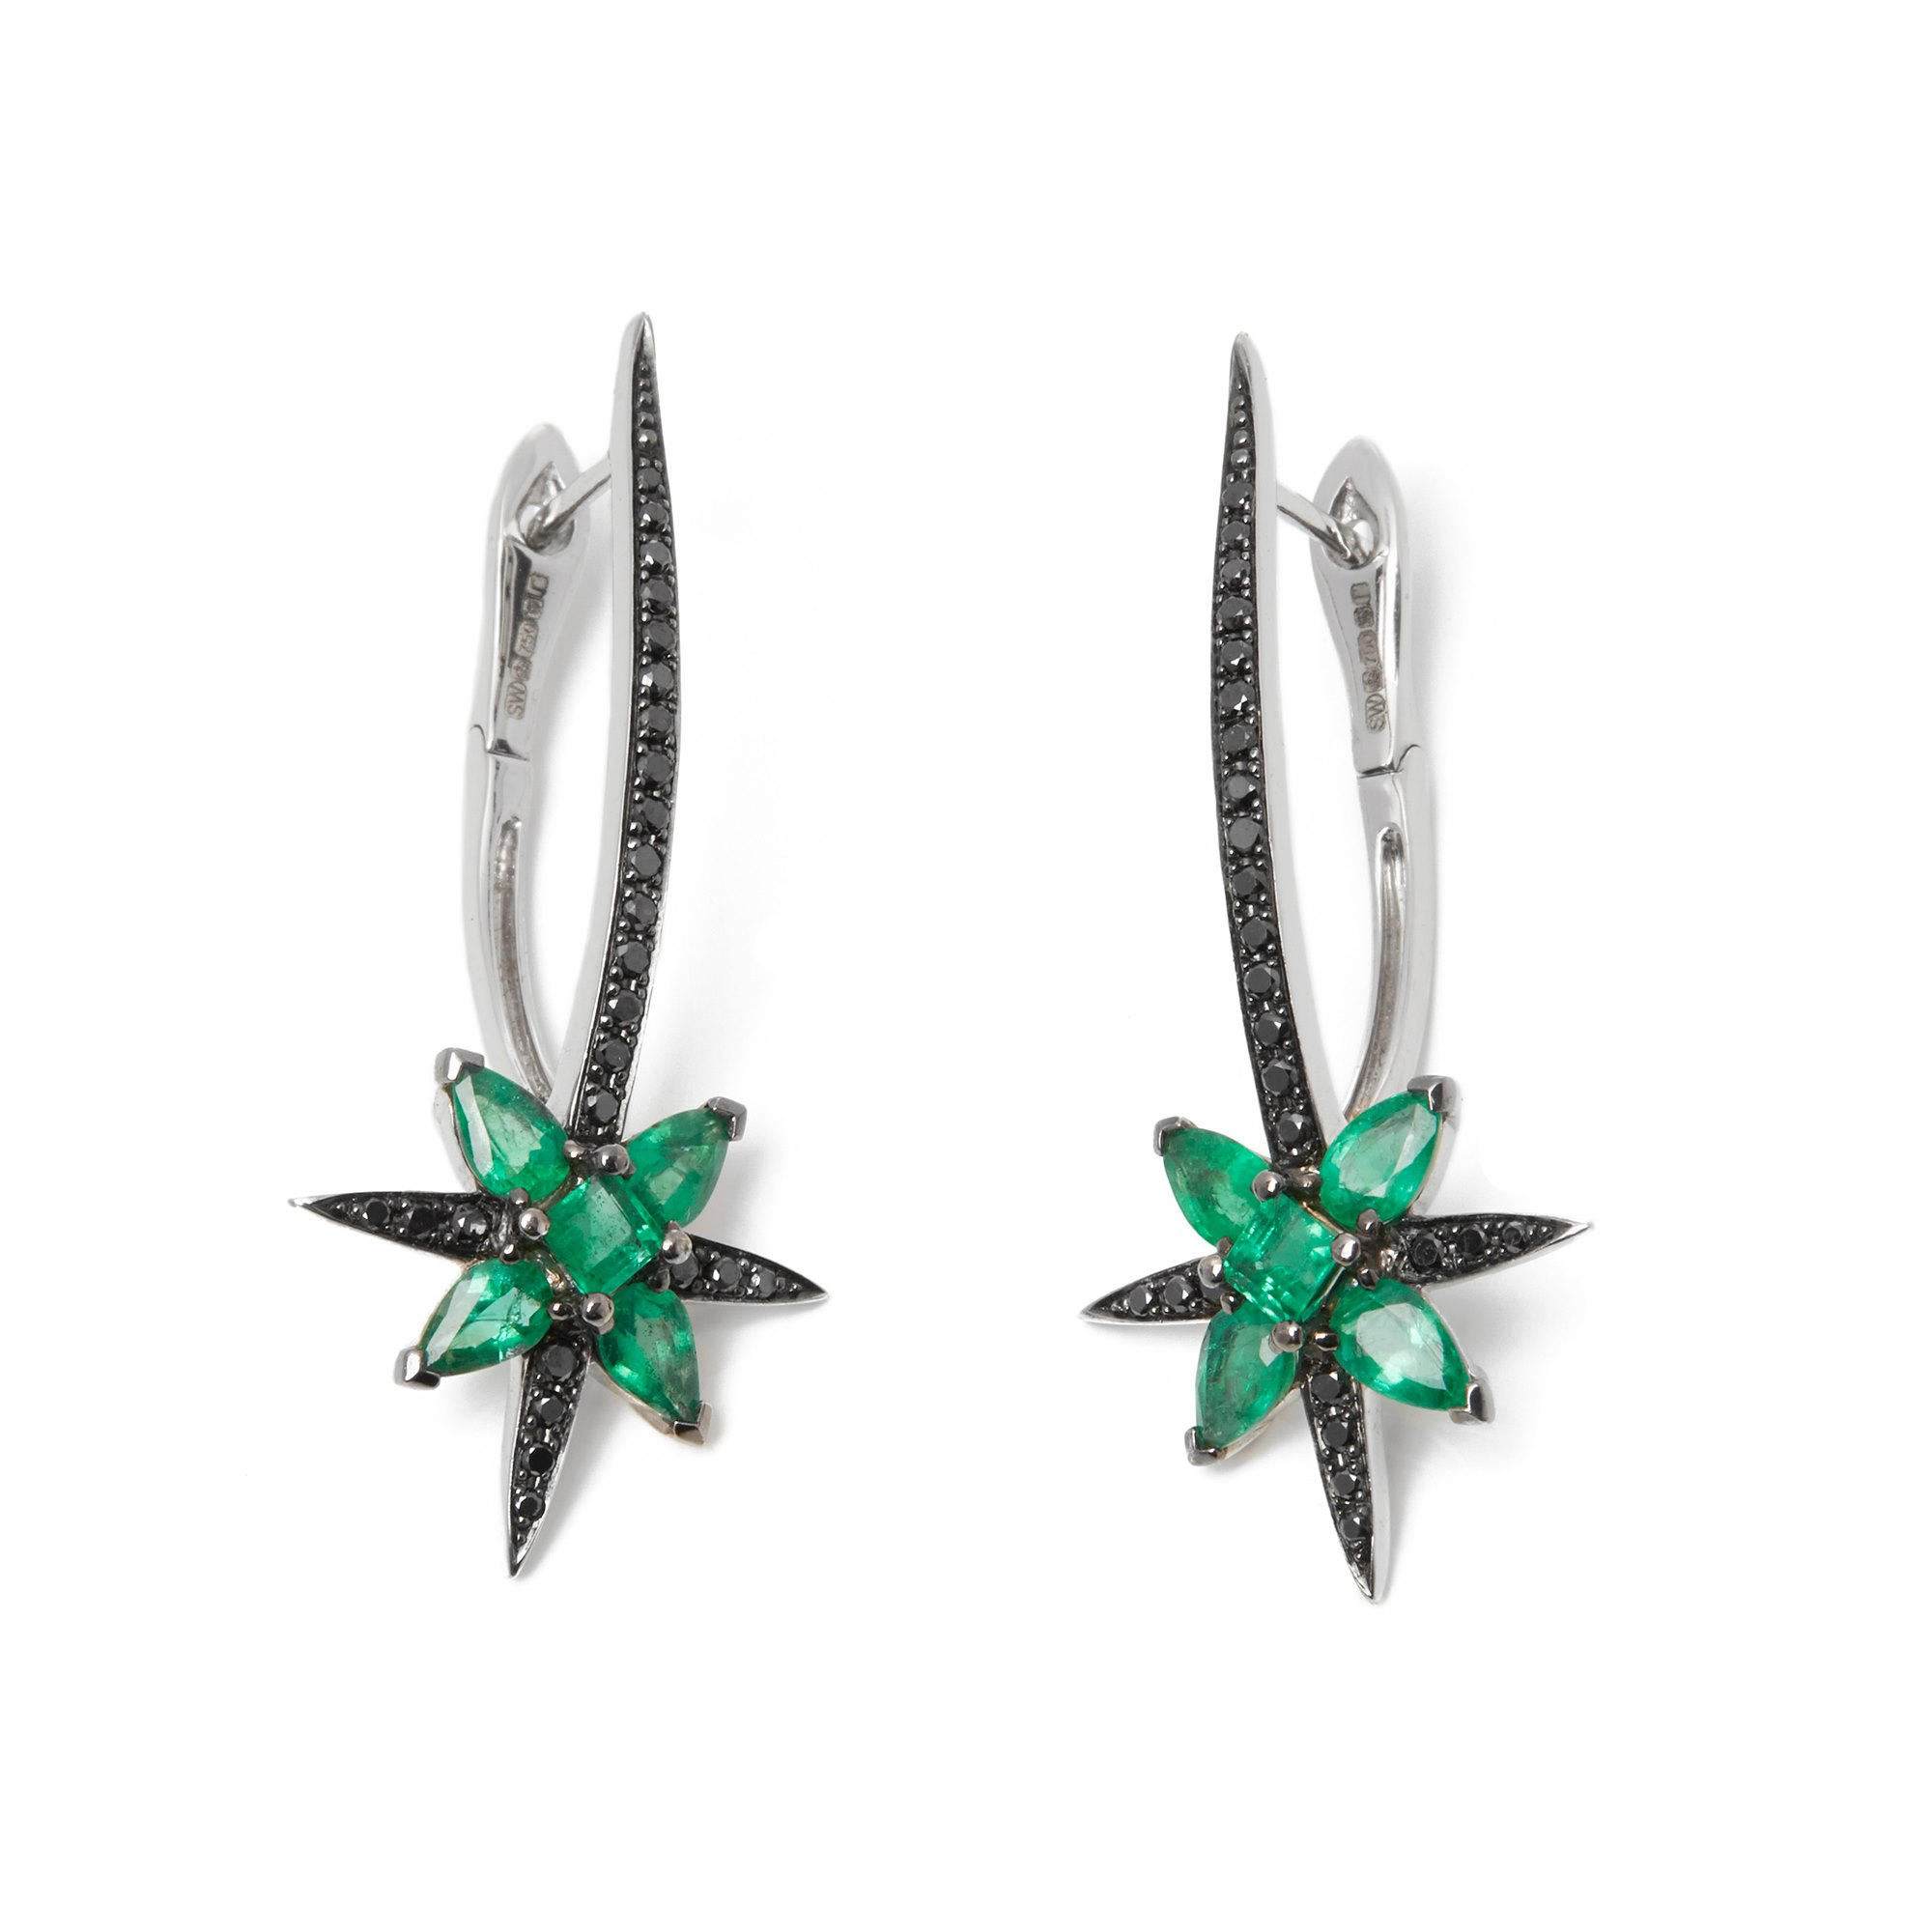 Stephen Webster Belle Epoque 18ct White Gold Emerald and Diamond Earring